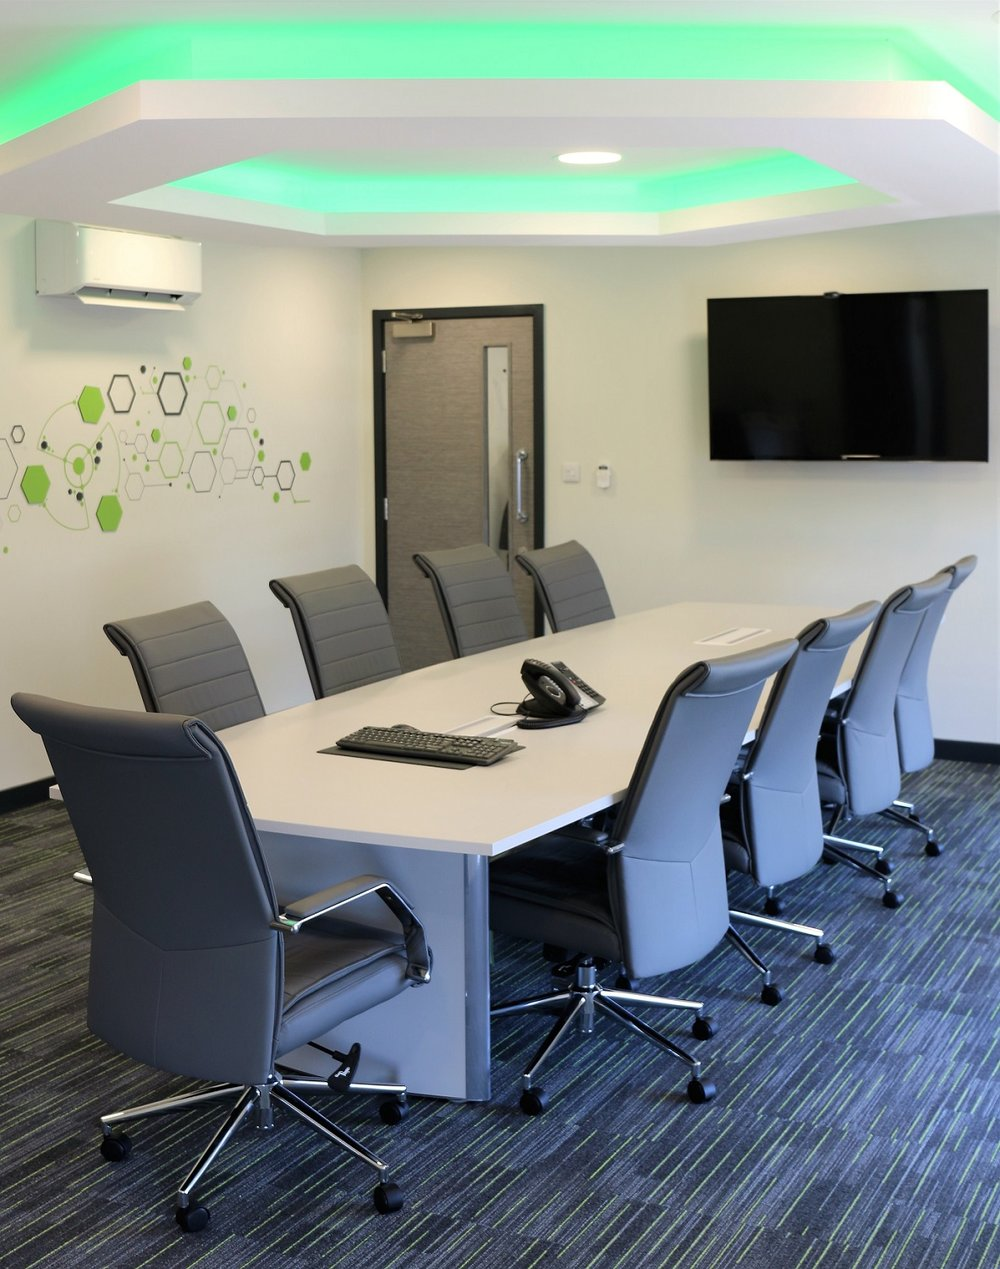 Boardroom fit-out, decoration and furniture